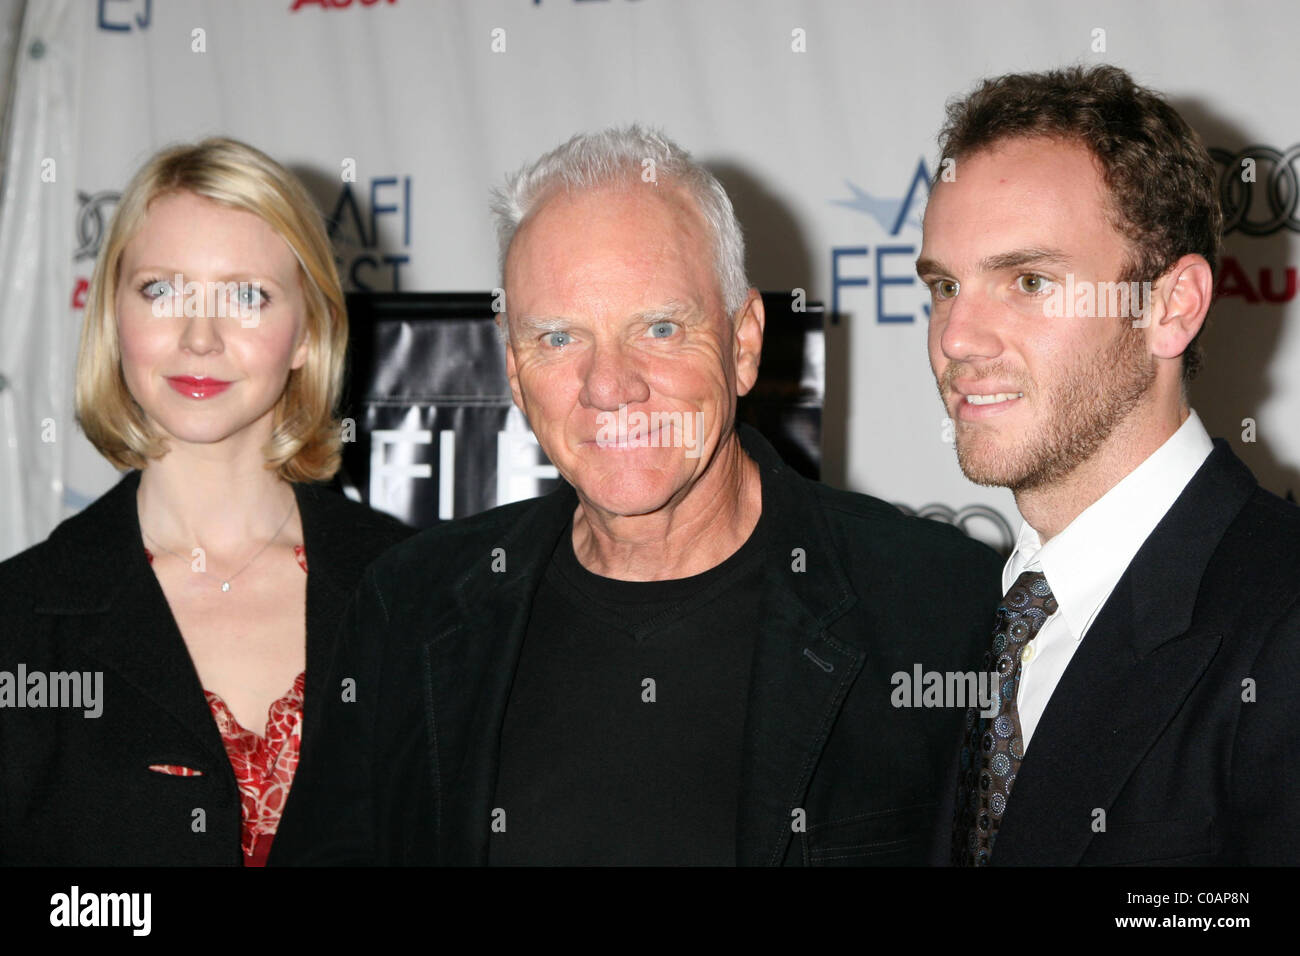 Lilly mcdowell malcolm mcdowell and charlie mcdowell southland tales premiere as part